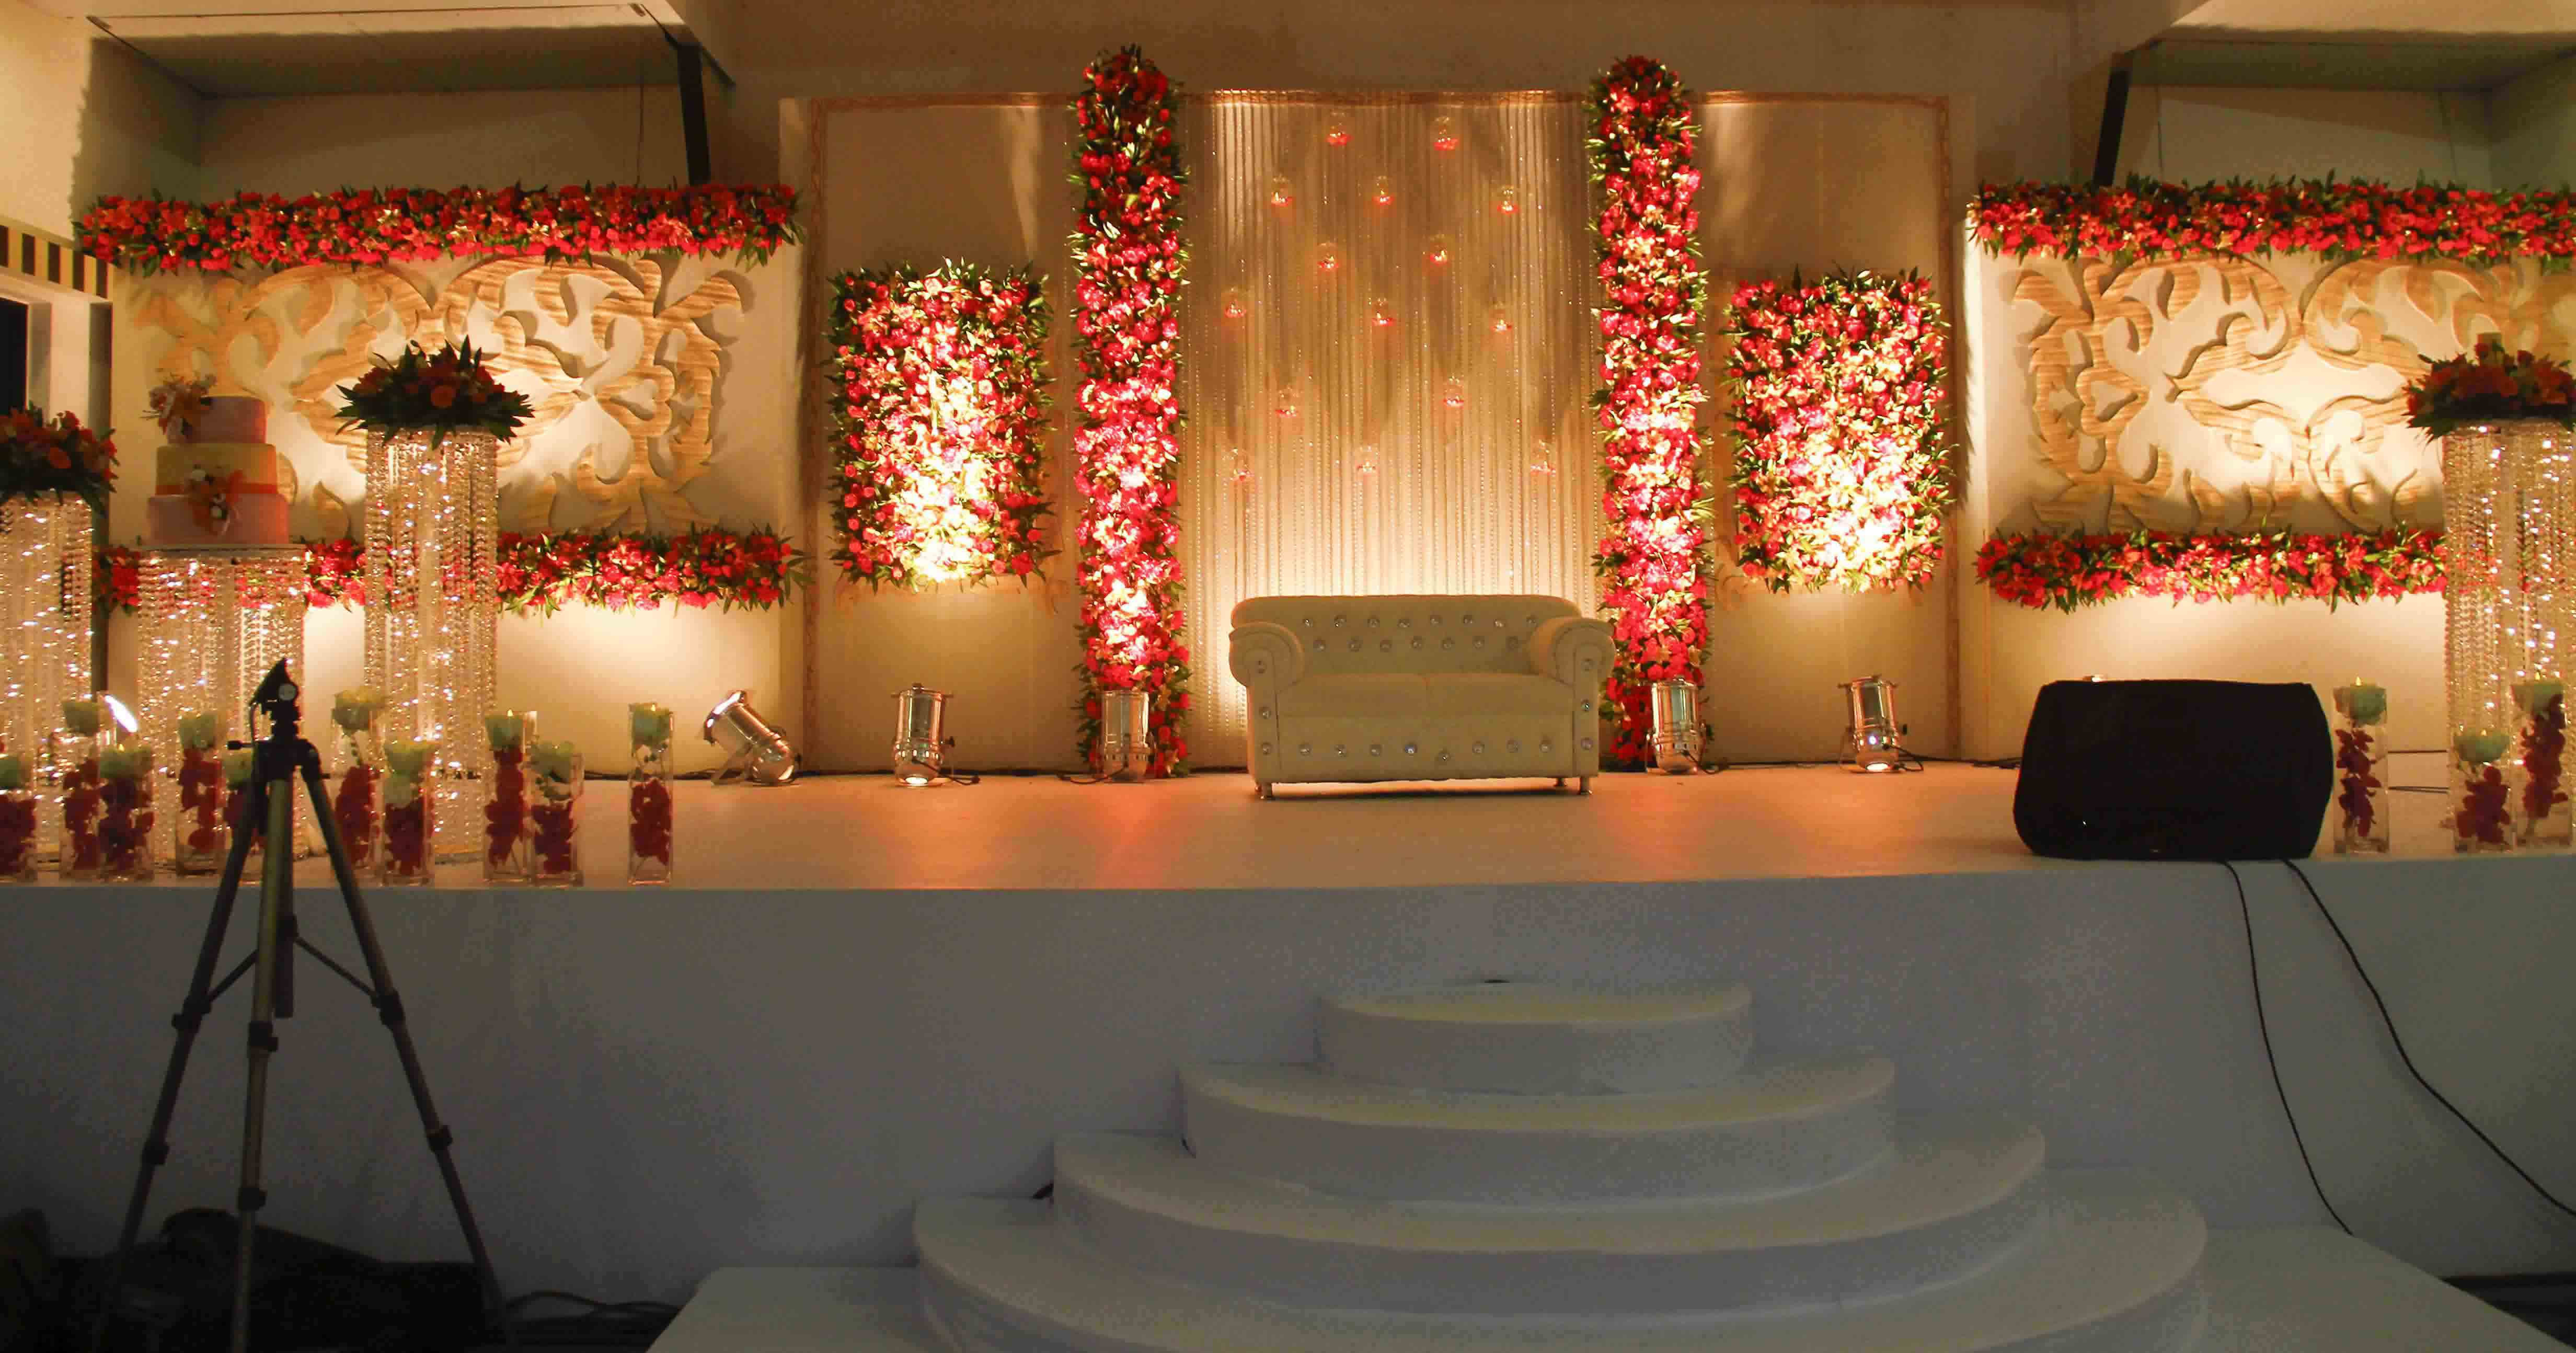 wedding reception planner planning company thodupuzha munnar idukky idukki kerala india.jpg